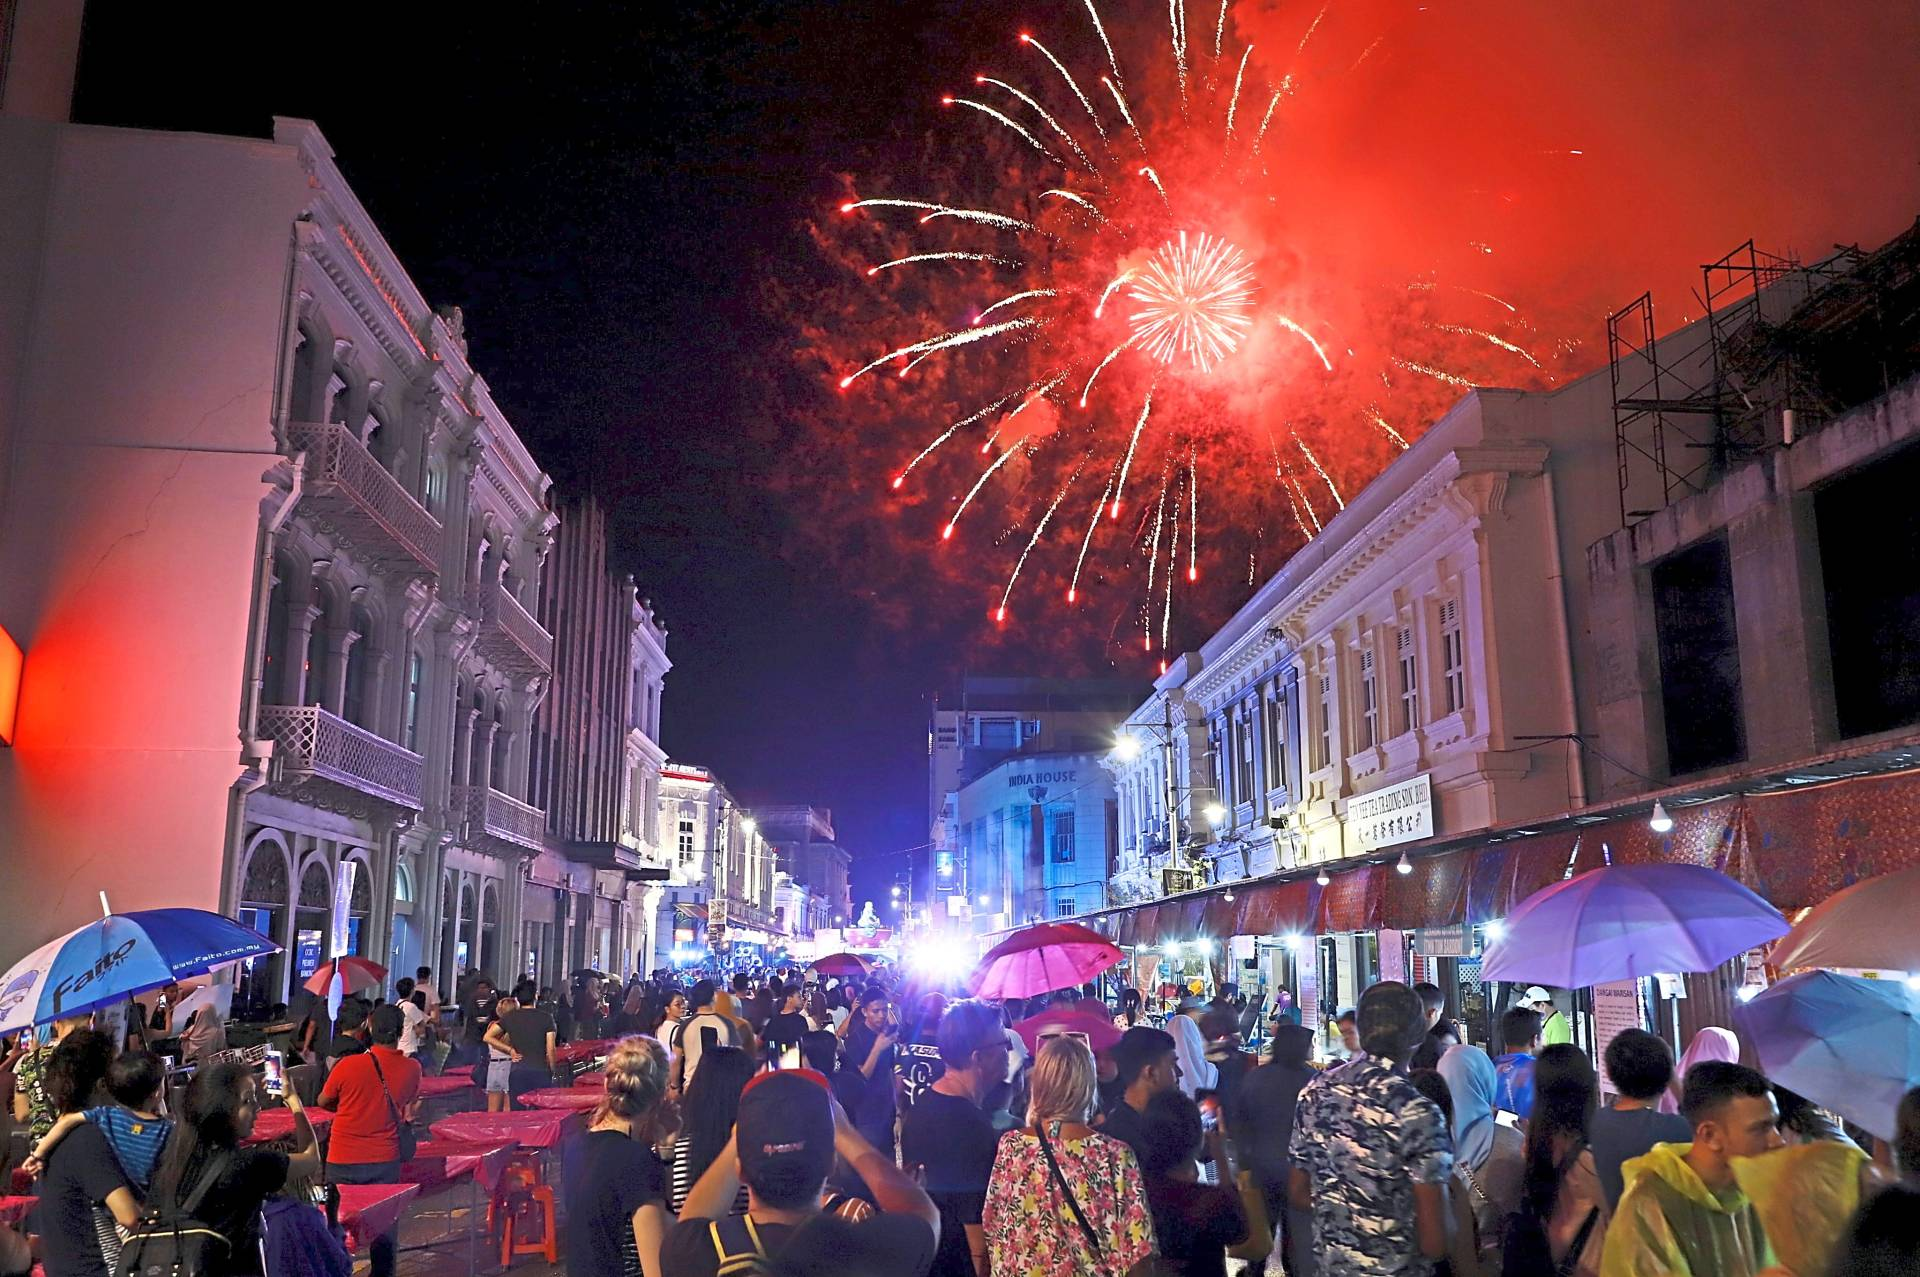 A fireworks display lighting up the sky above the Penang Street Food Festival 2019 at Beach Street.